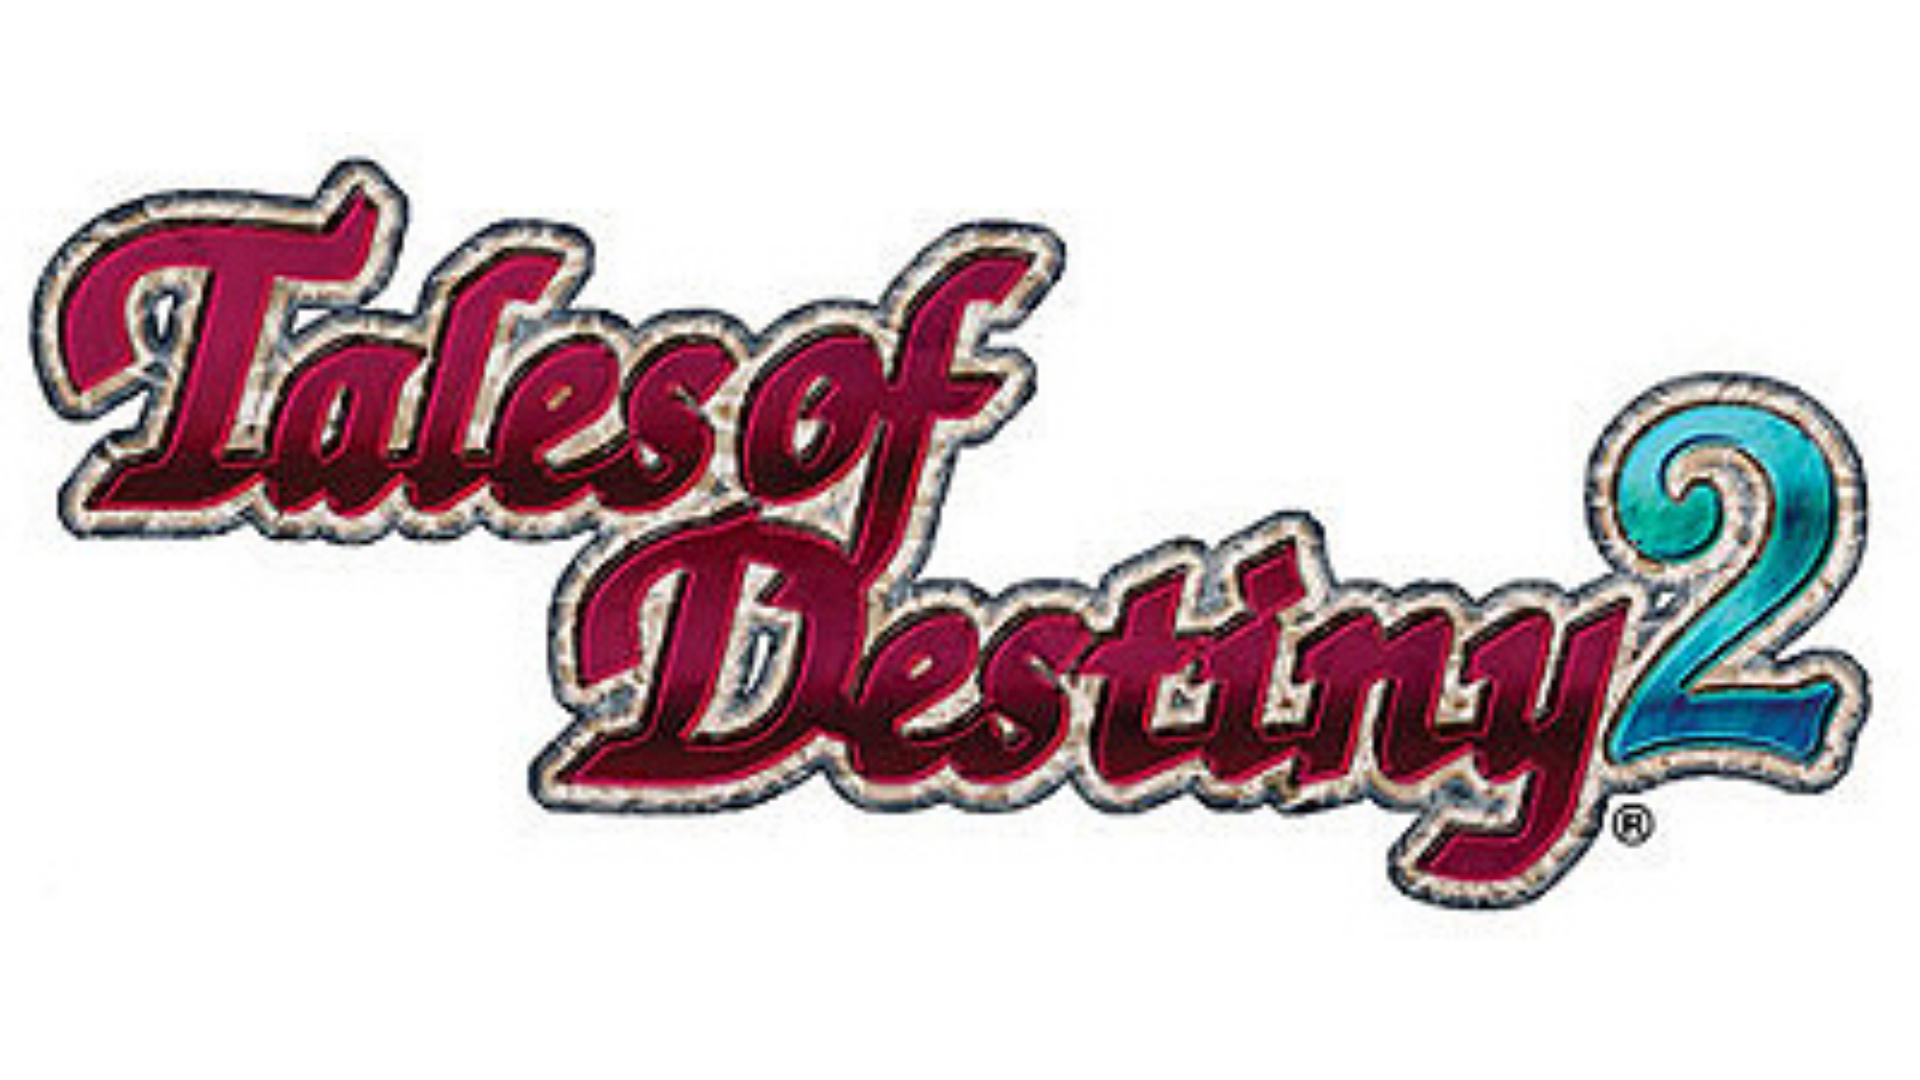 Tales of Destiny 2 Logo